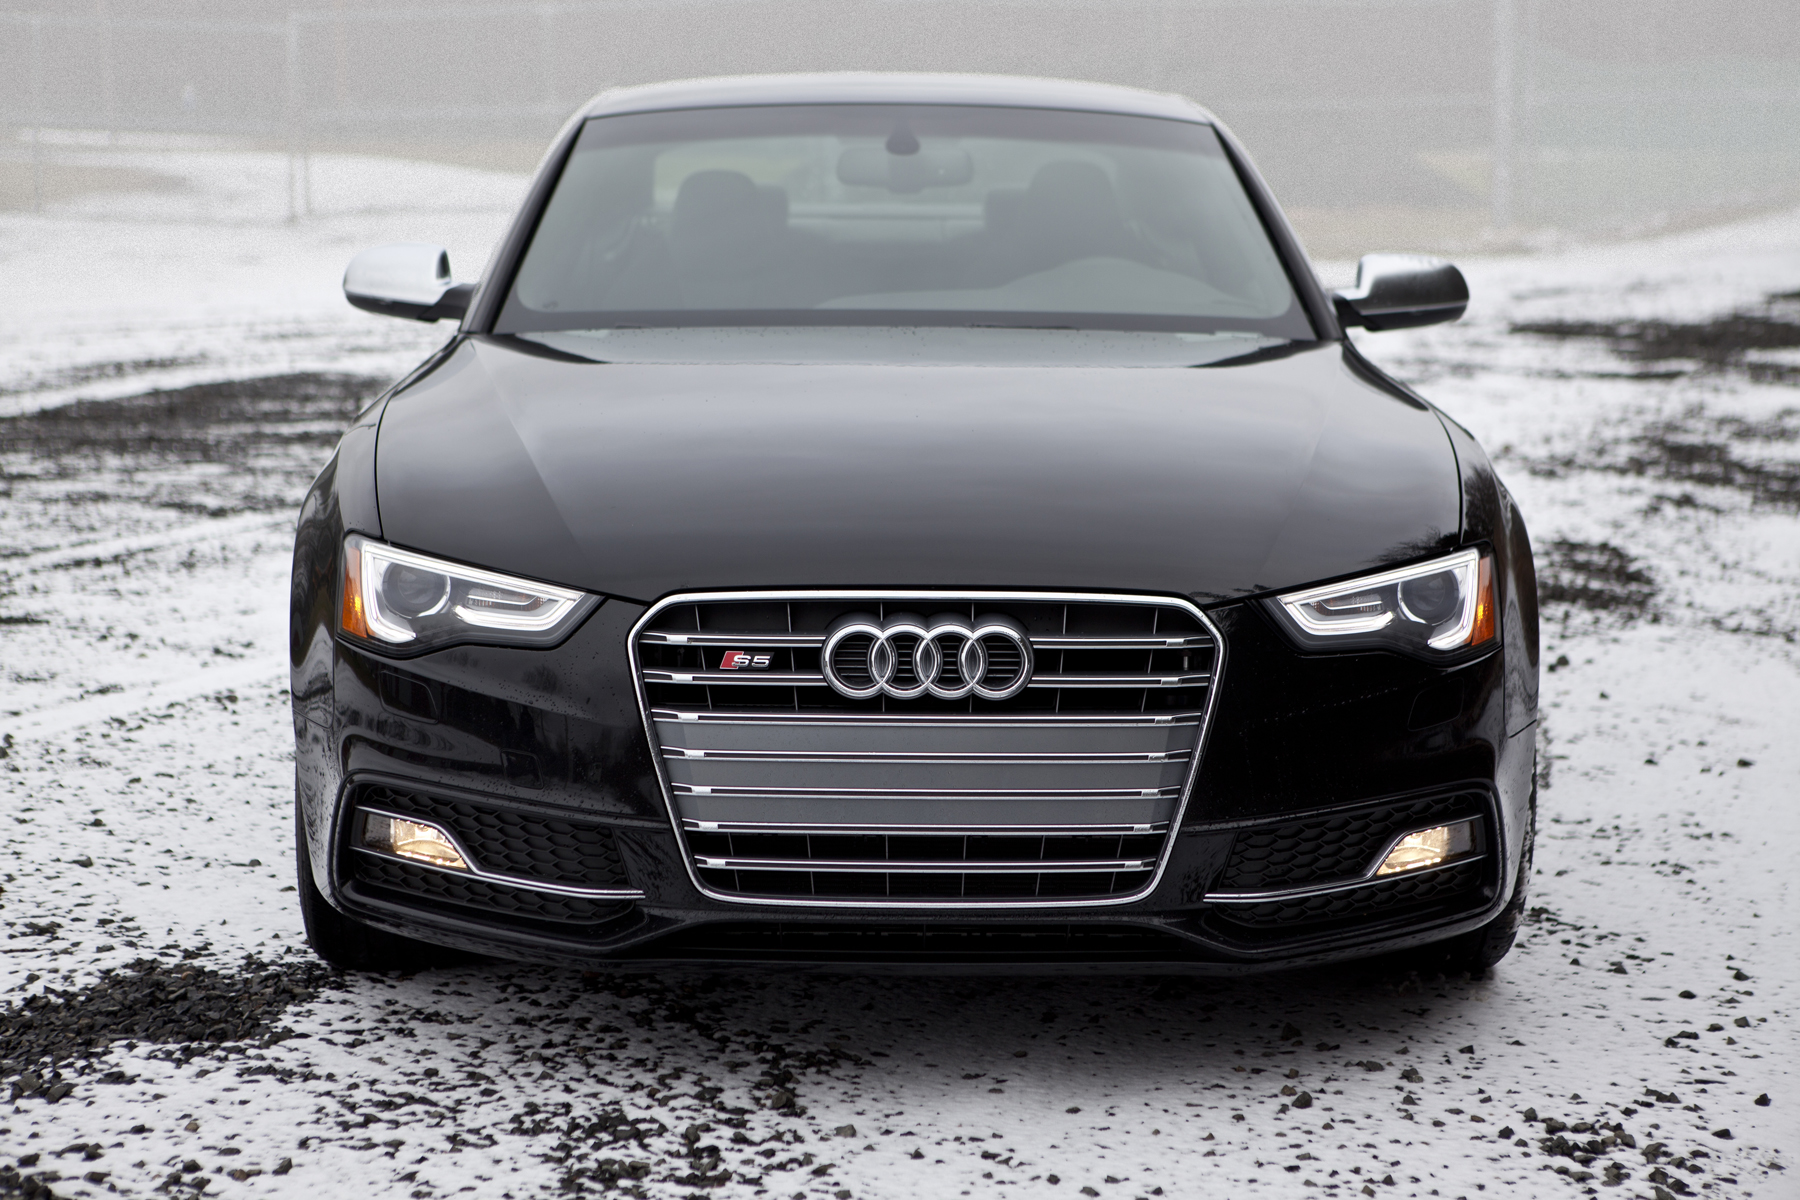 2015 audi s5 information and photos zombiedrive. Black Bedroom Furniture Sets. Home Design Ideas